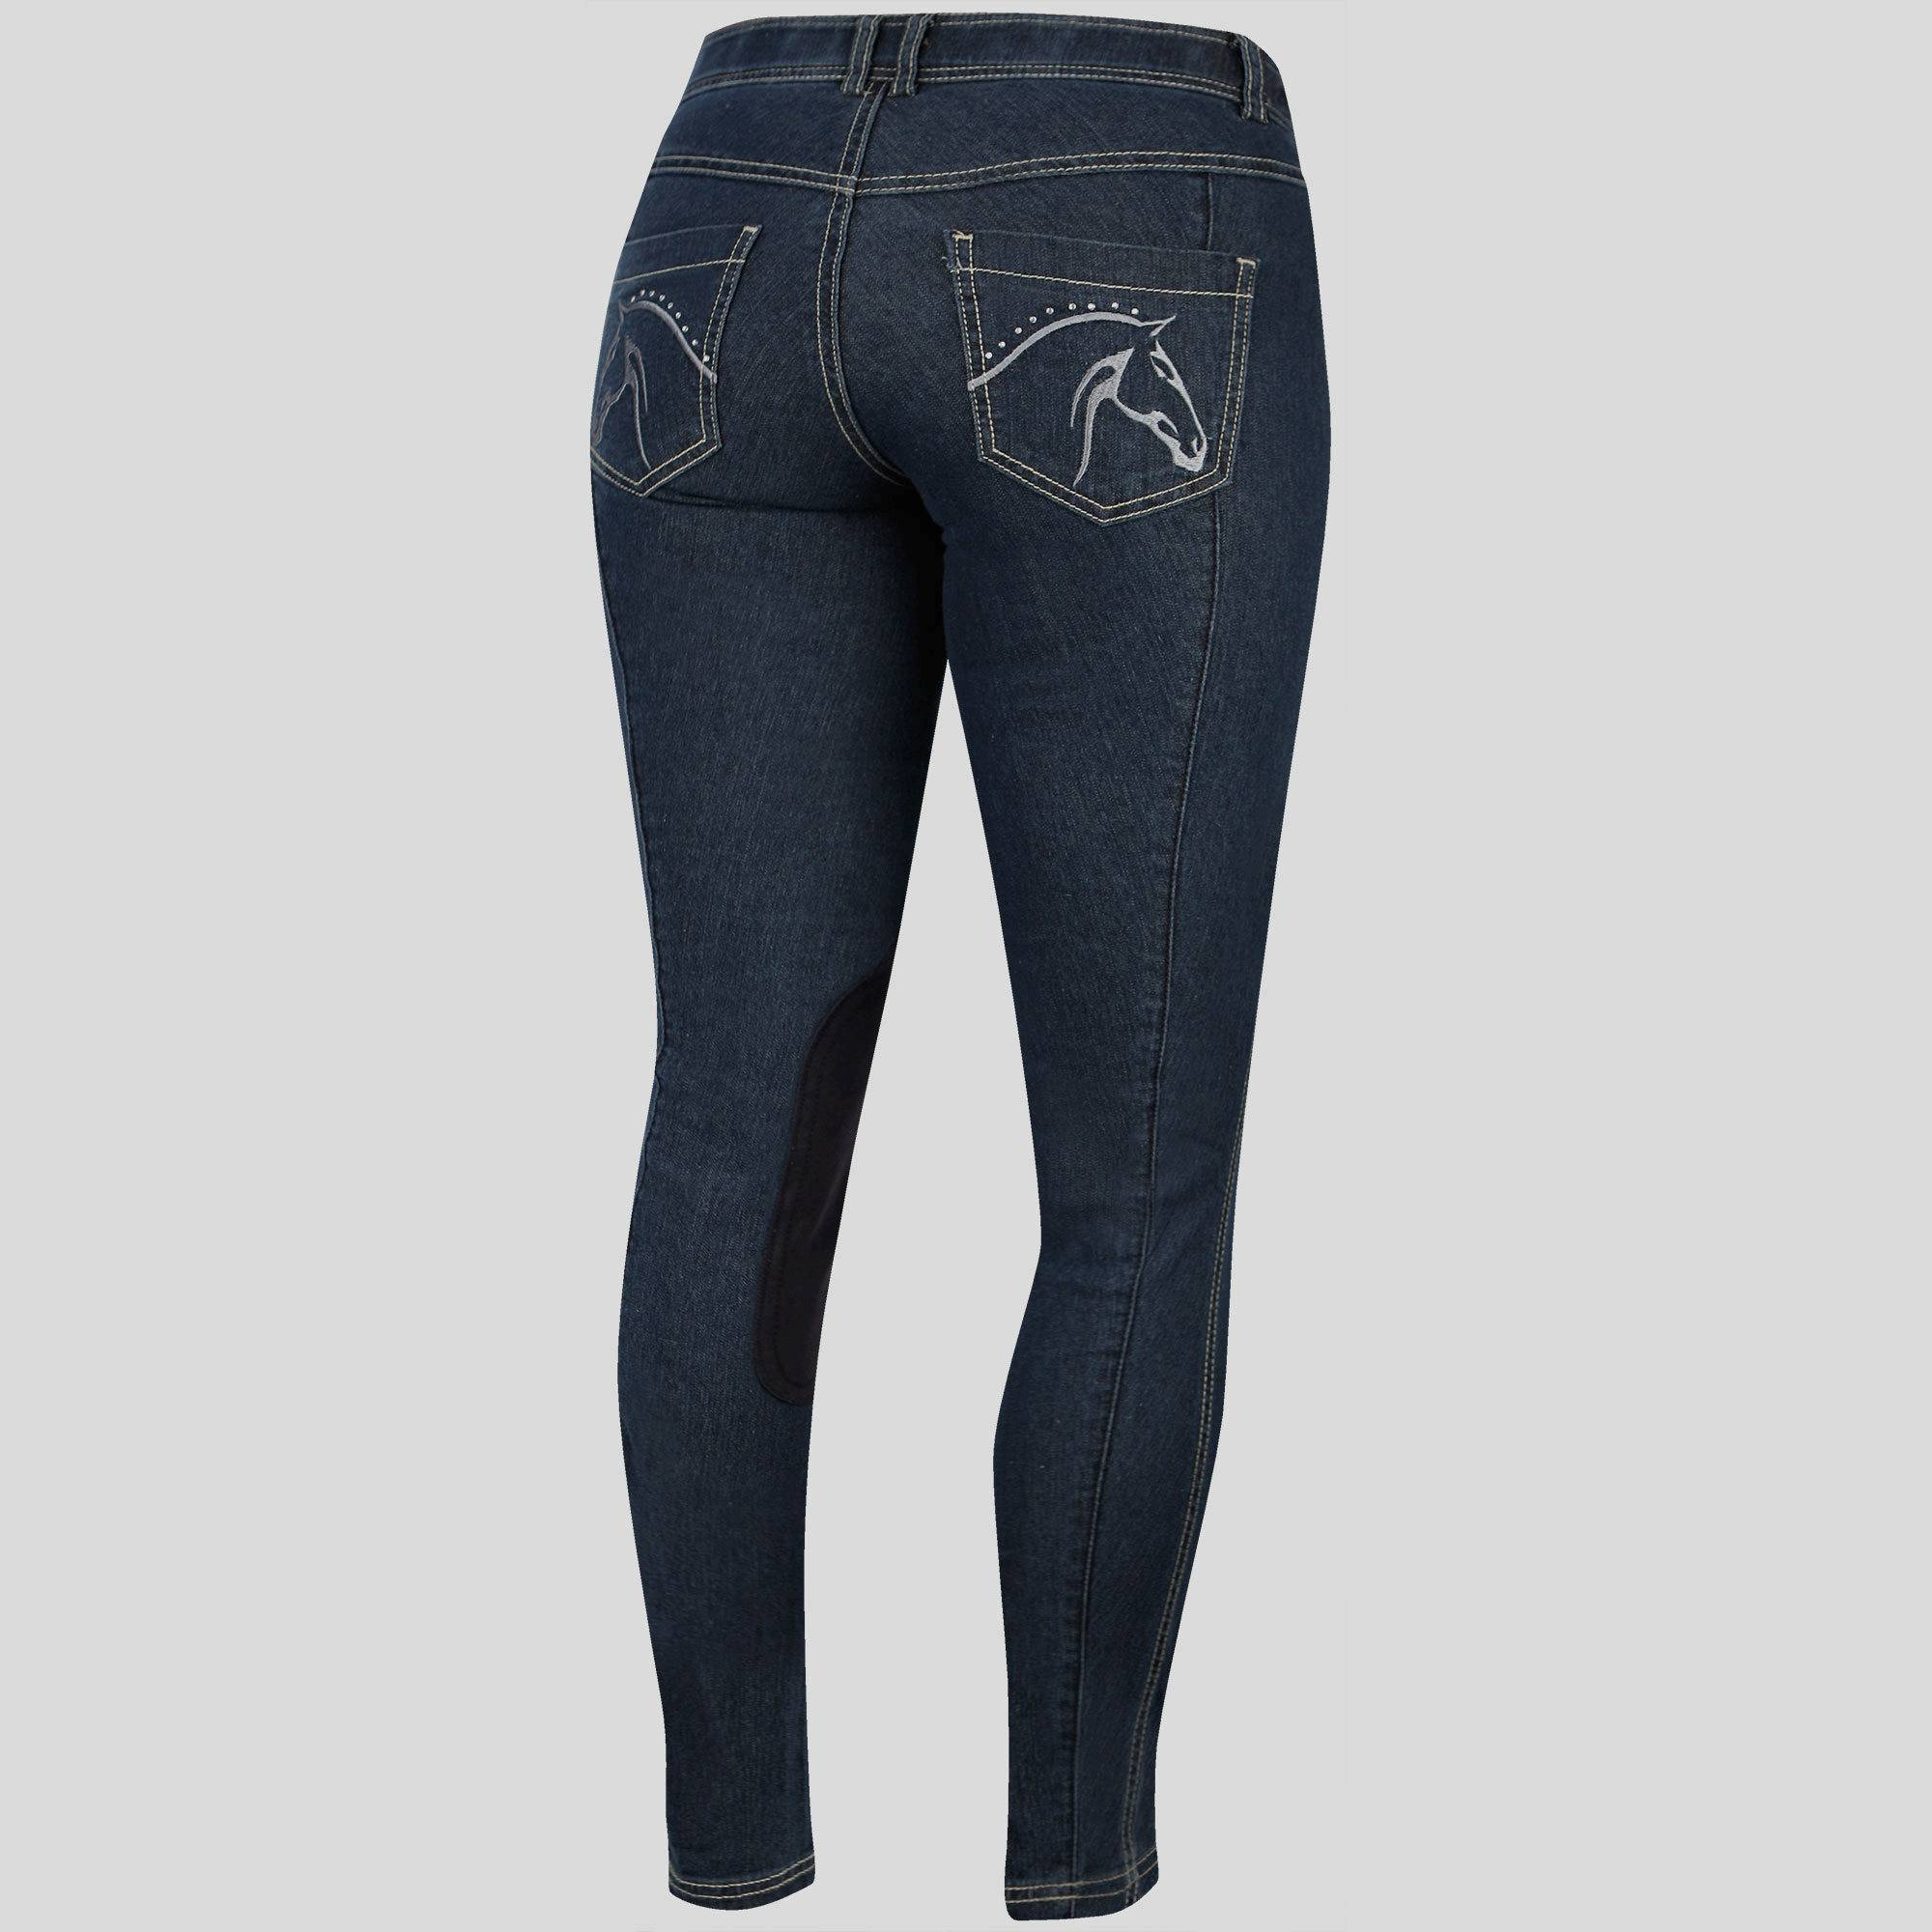 Irideon Diamond Horse Pocket Denim Breeches - Ladies